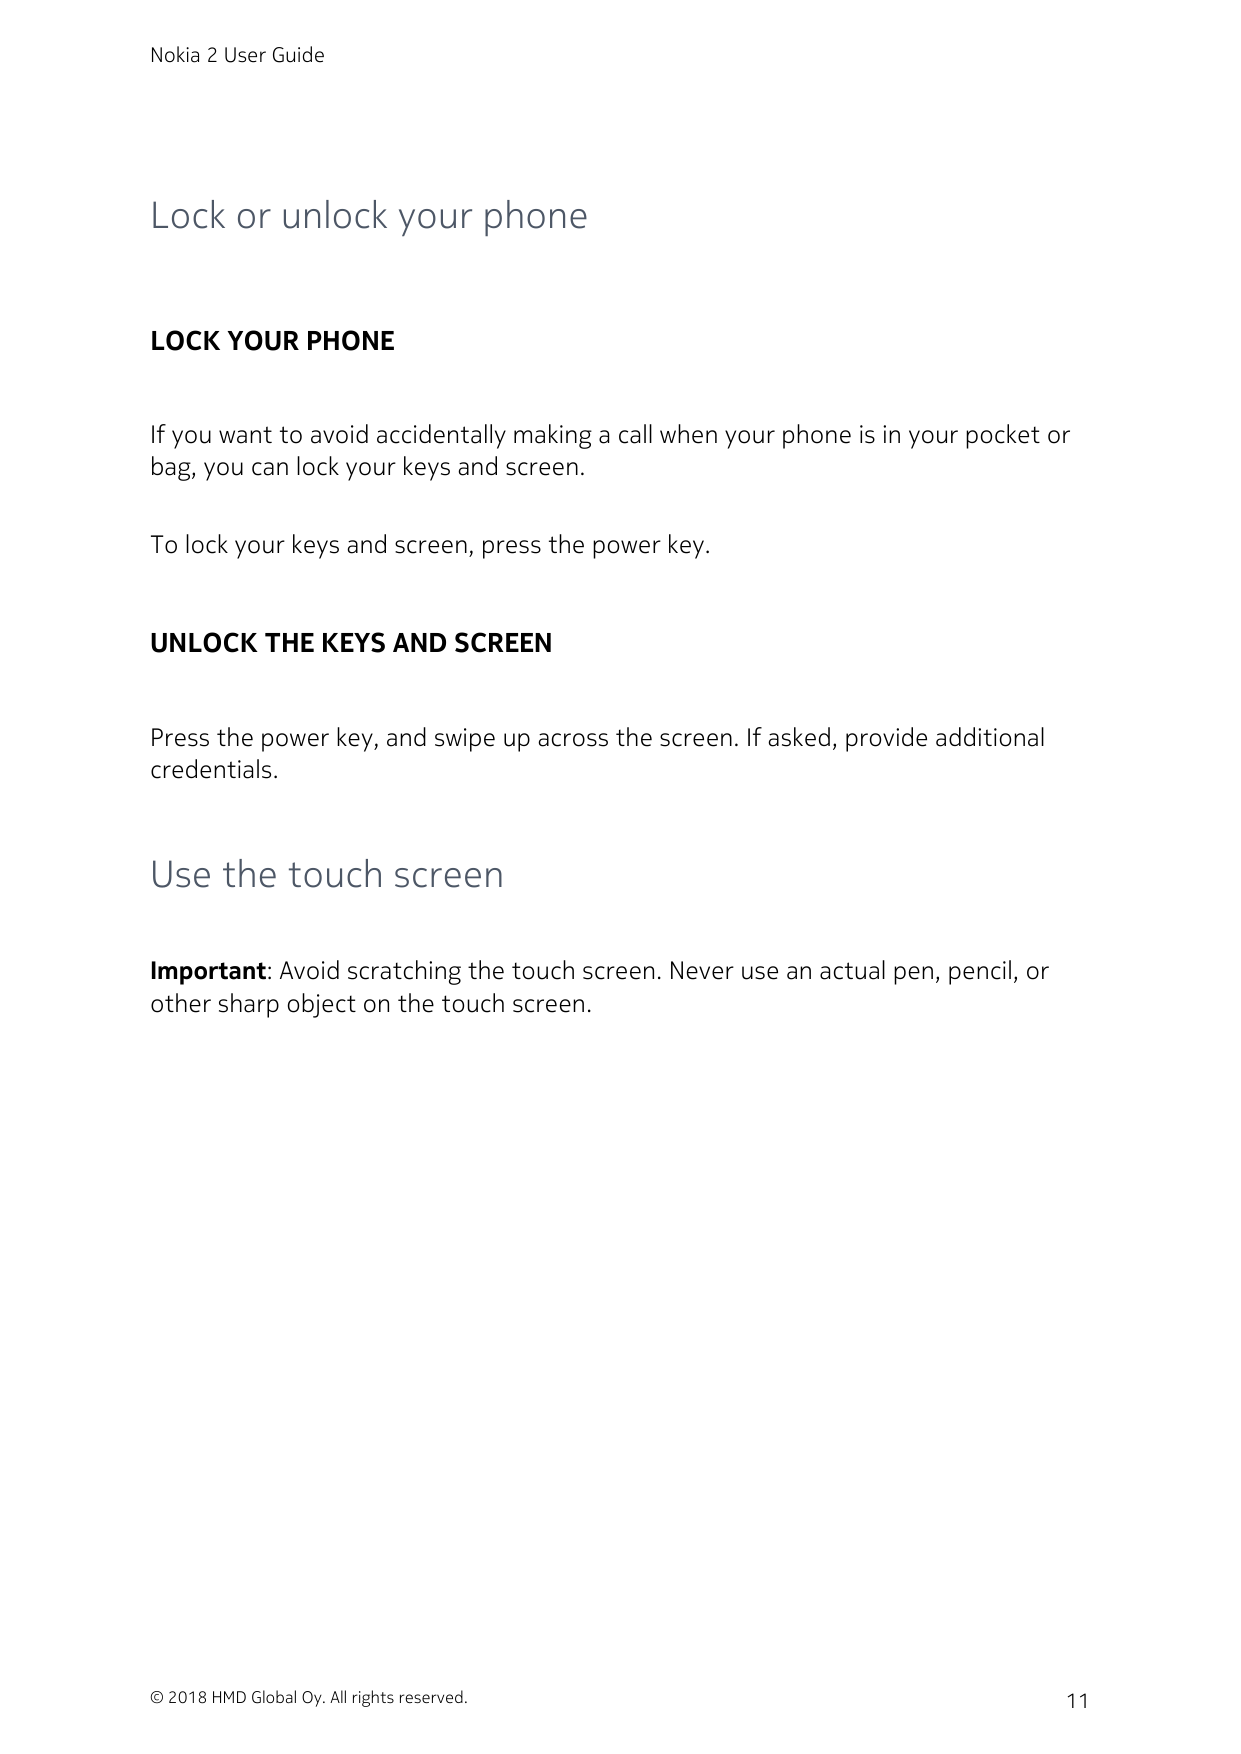 Manual - Nokia 2 - Android 7 1 - Smart Guides